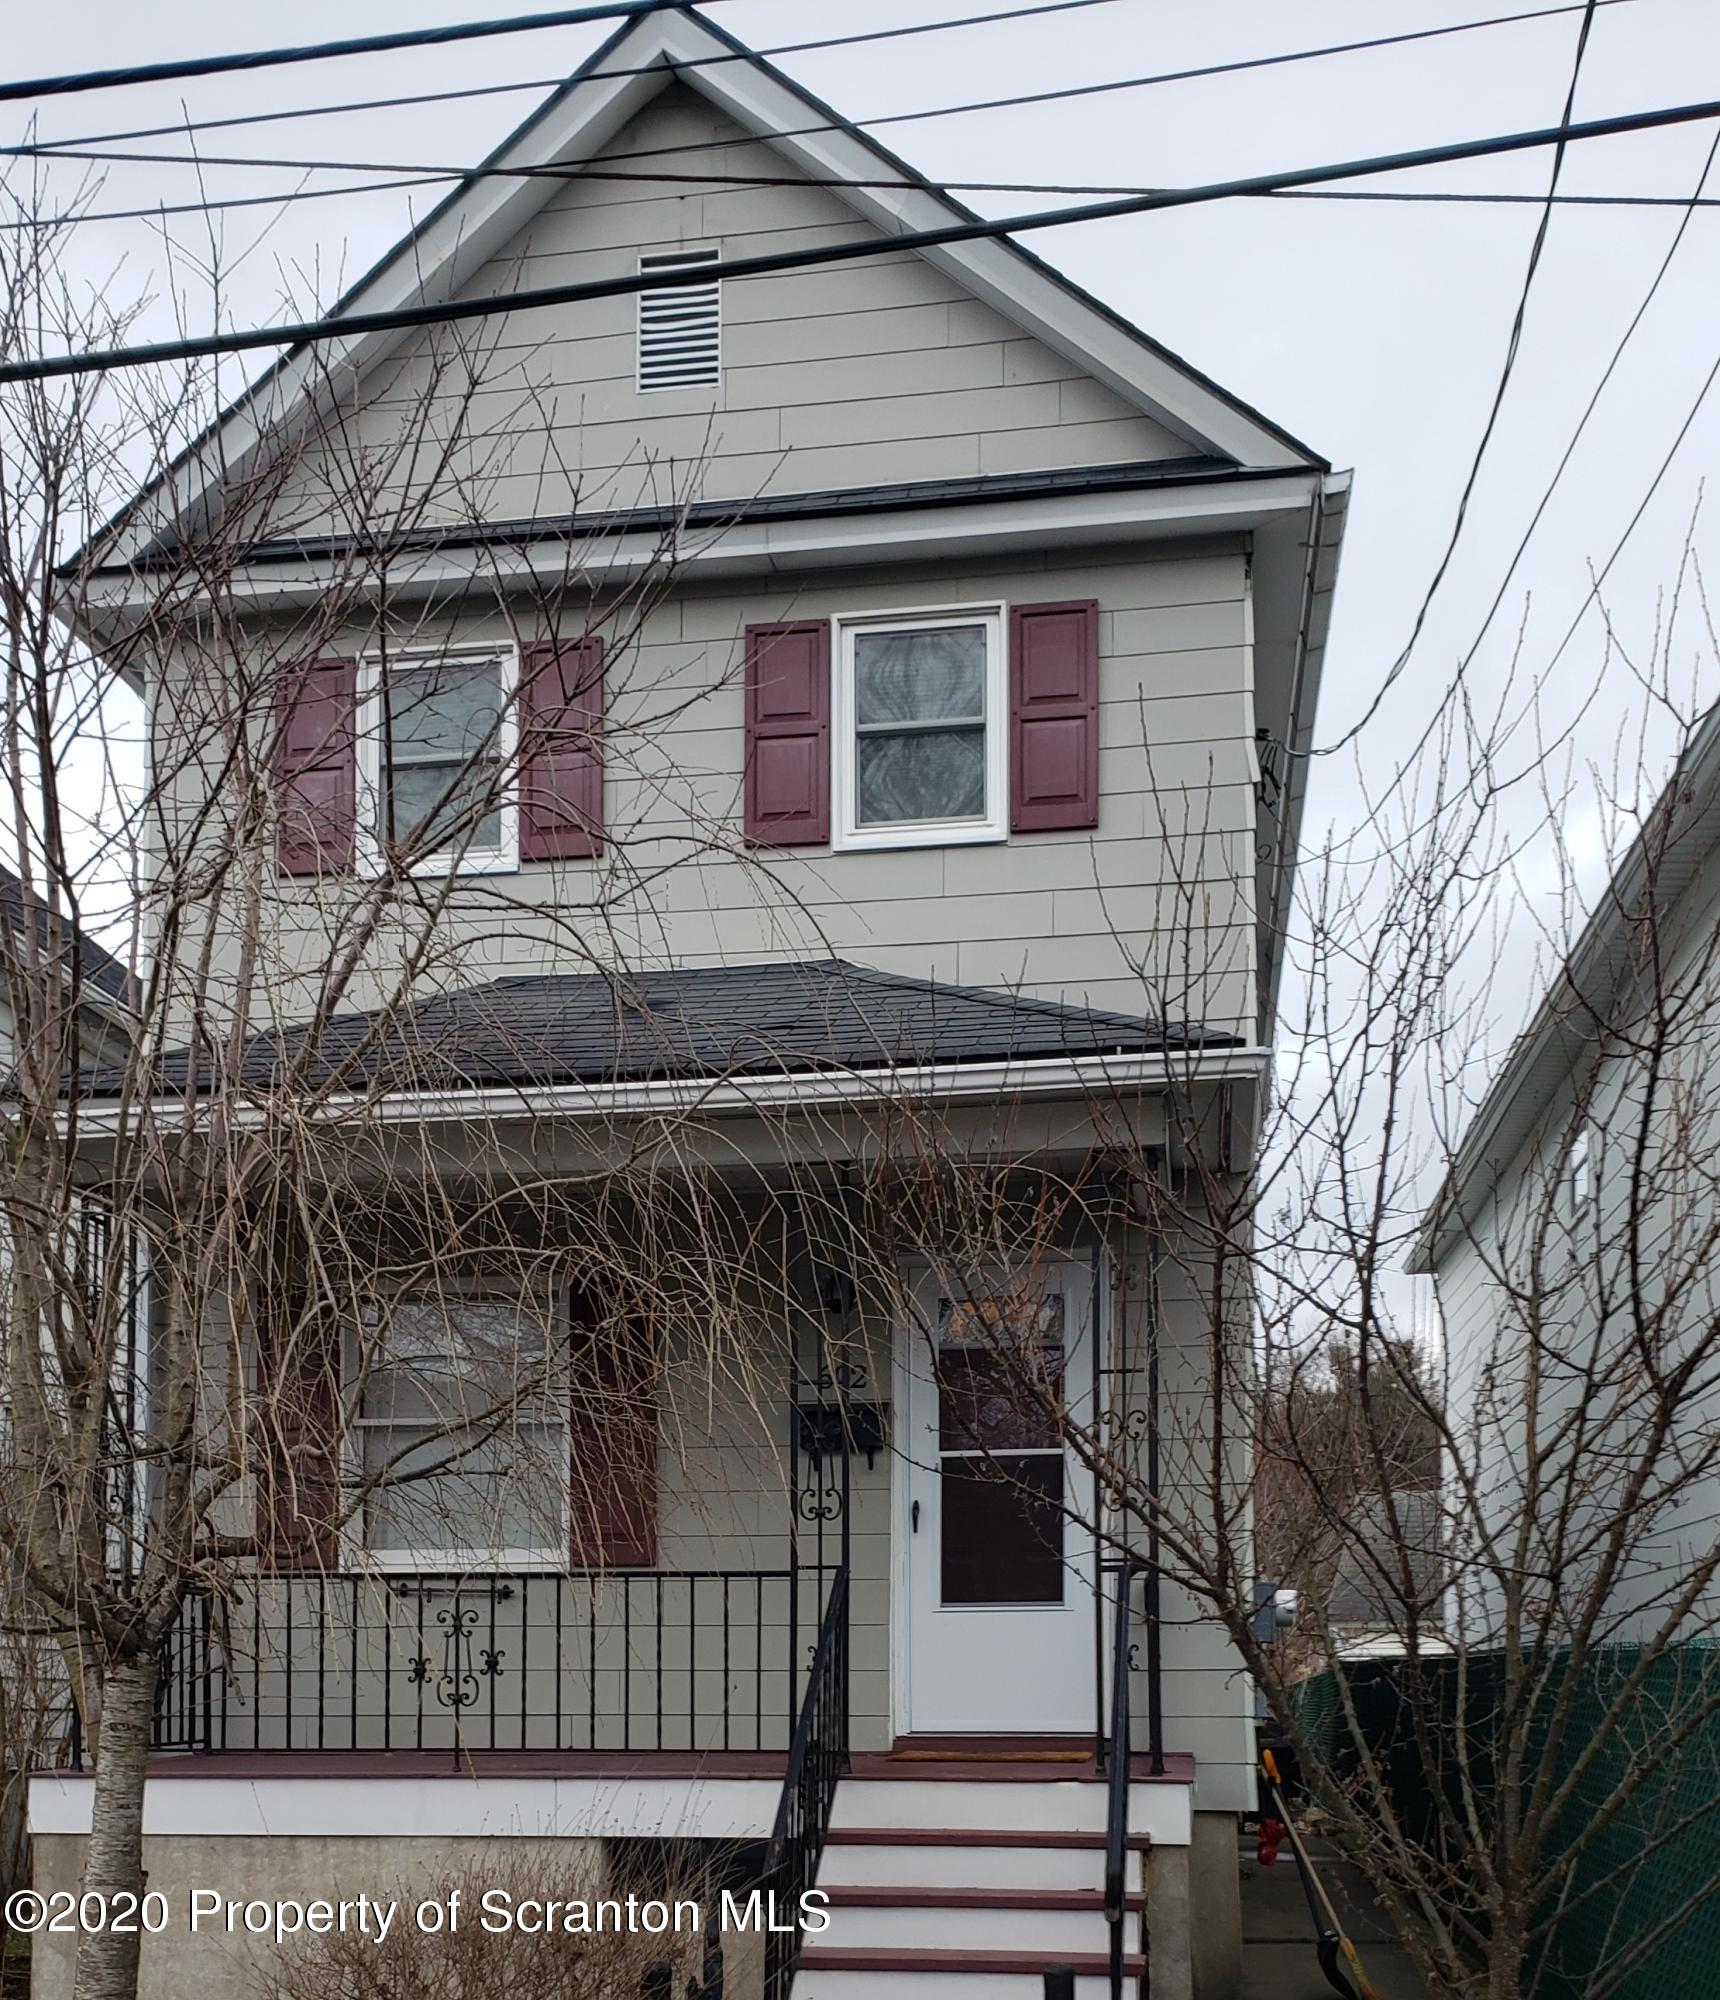 602 Ash St, Dickson City, Pennsylvania 18519, 2 Bedrooms Bedrooms, 5 Rooms Rooms,2 BathroomsBathrooms,Single Family,For Sale,Ash,20-5369